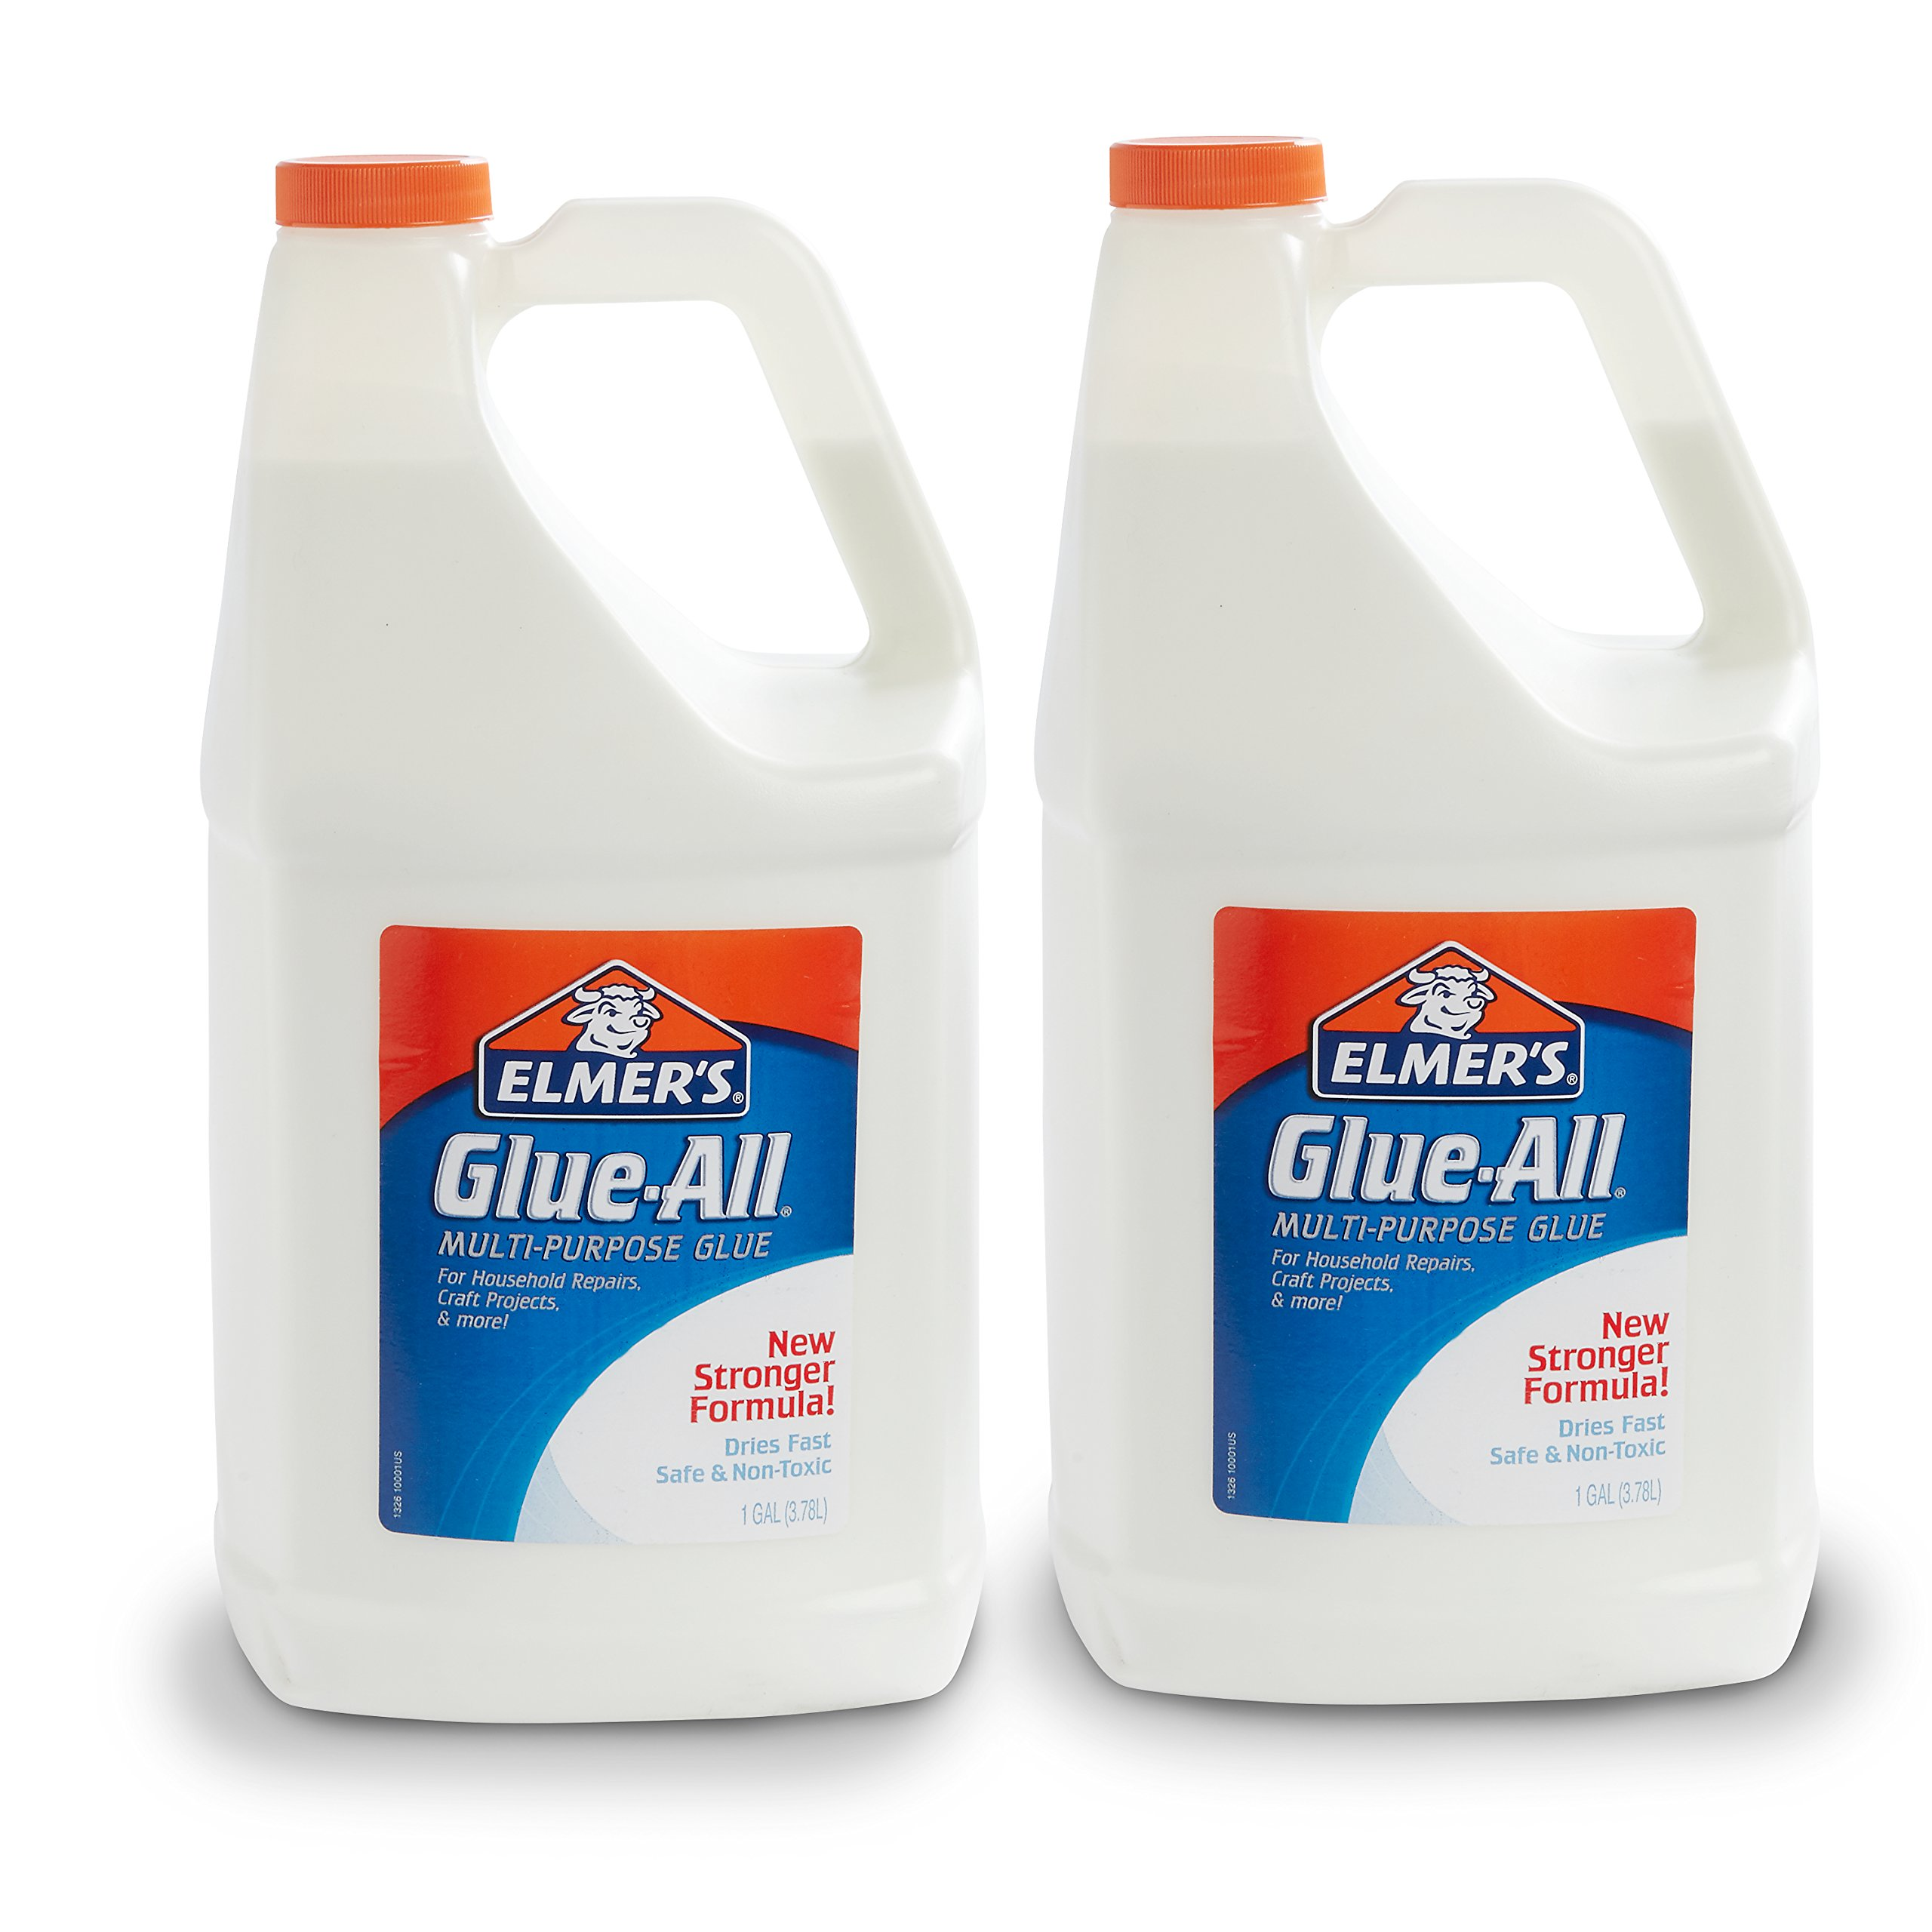 Elmer's Glue-All Multi-Purpose Liquid Glue, Extra Strong, 1 Gallon, 2 Count - Great for Making Slime by Elmer's